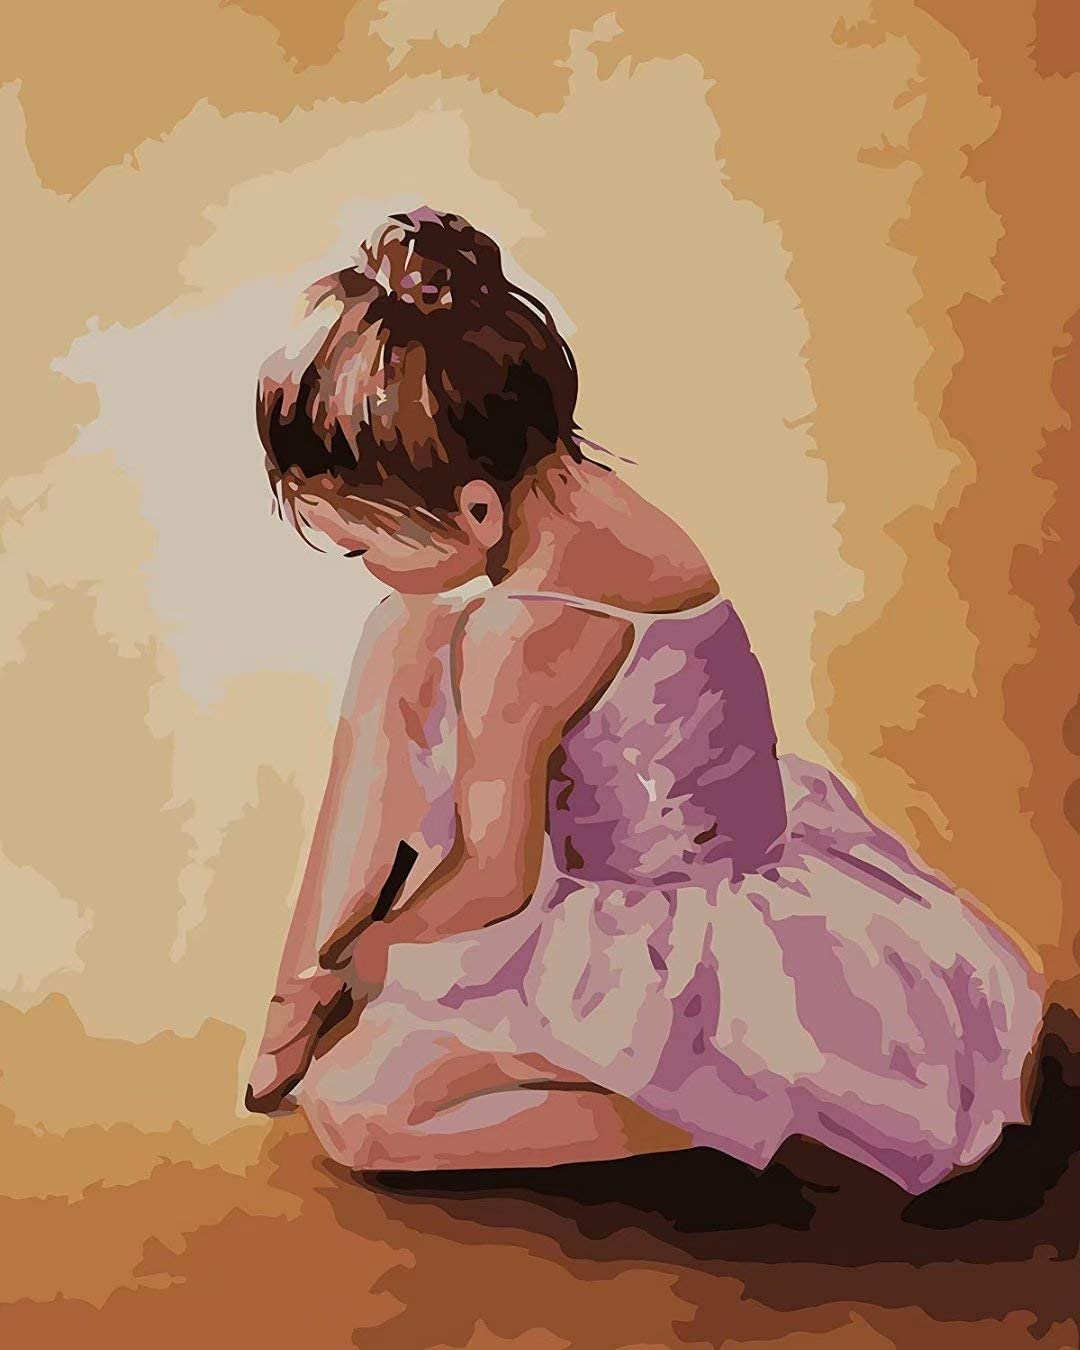 DIY Painting Paint By Number Kit inch 16 Lovely - cheap 20 Colorado Springs Mall Ballerina